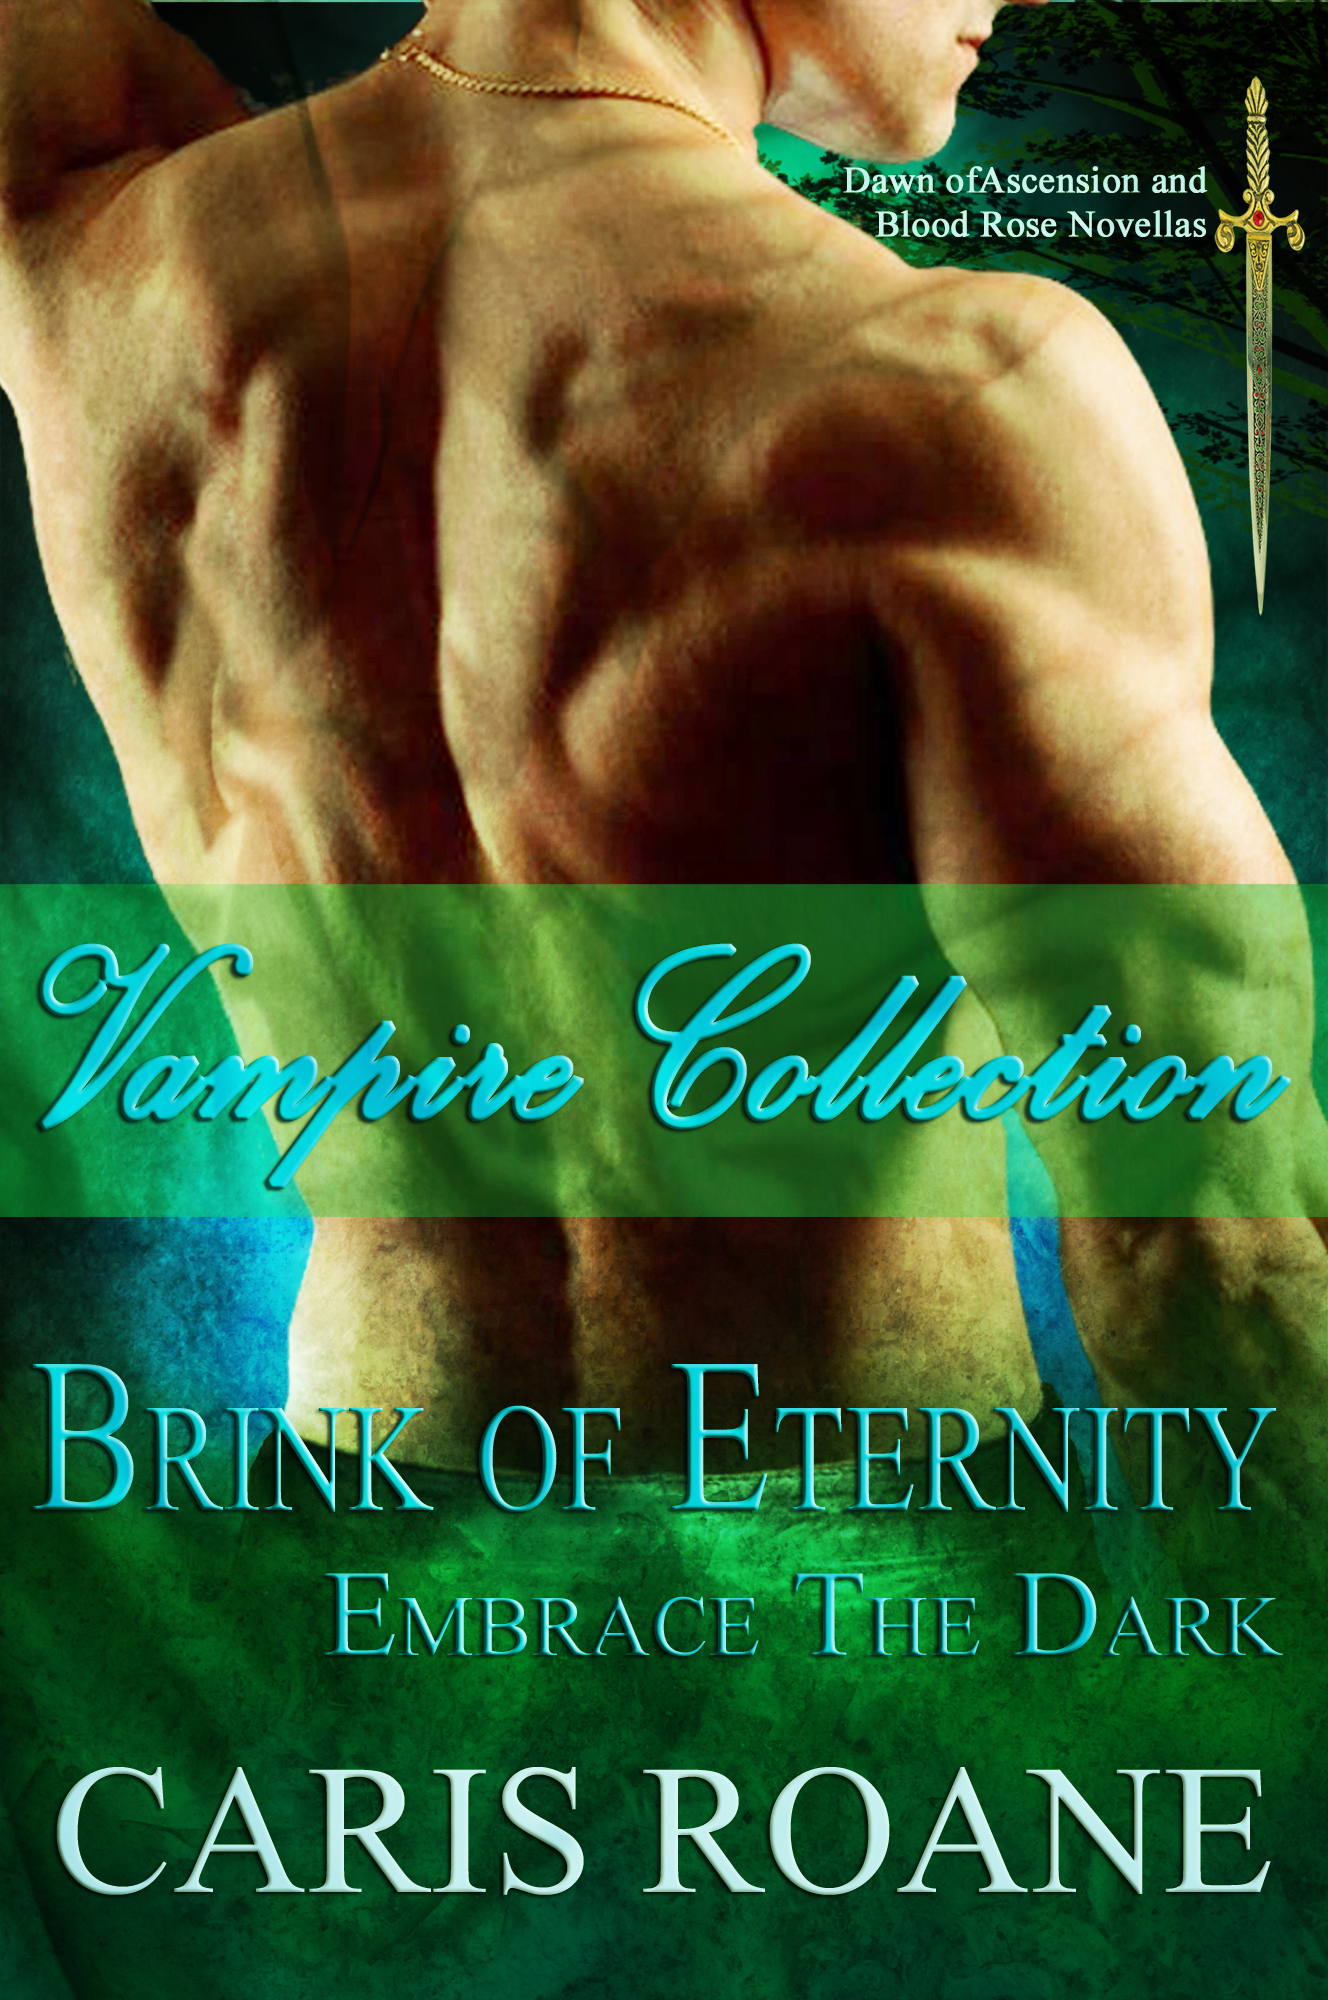 Vampire Collection: Brink of Eternity and Embrace the Dark